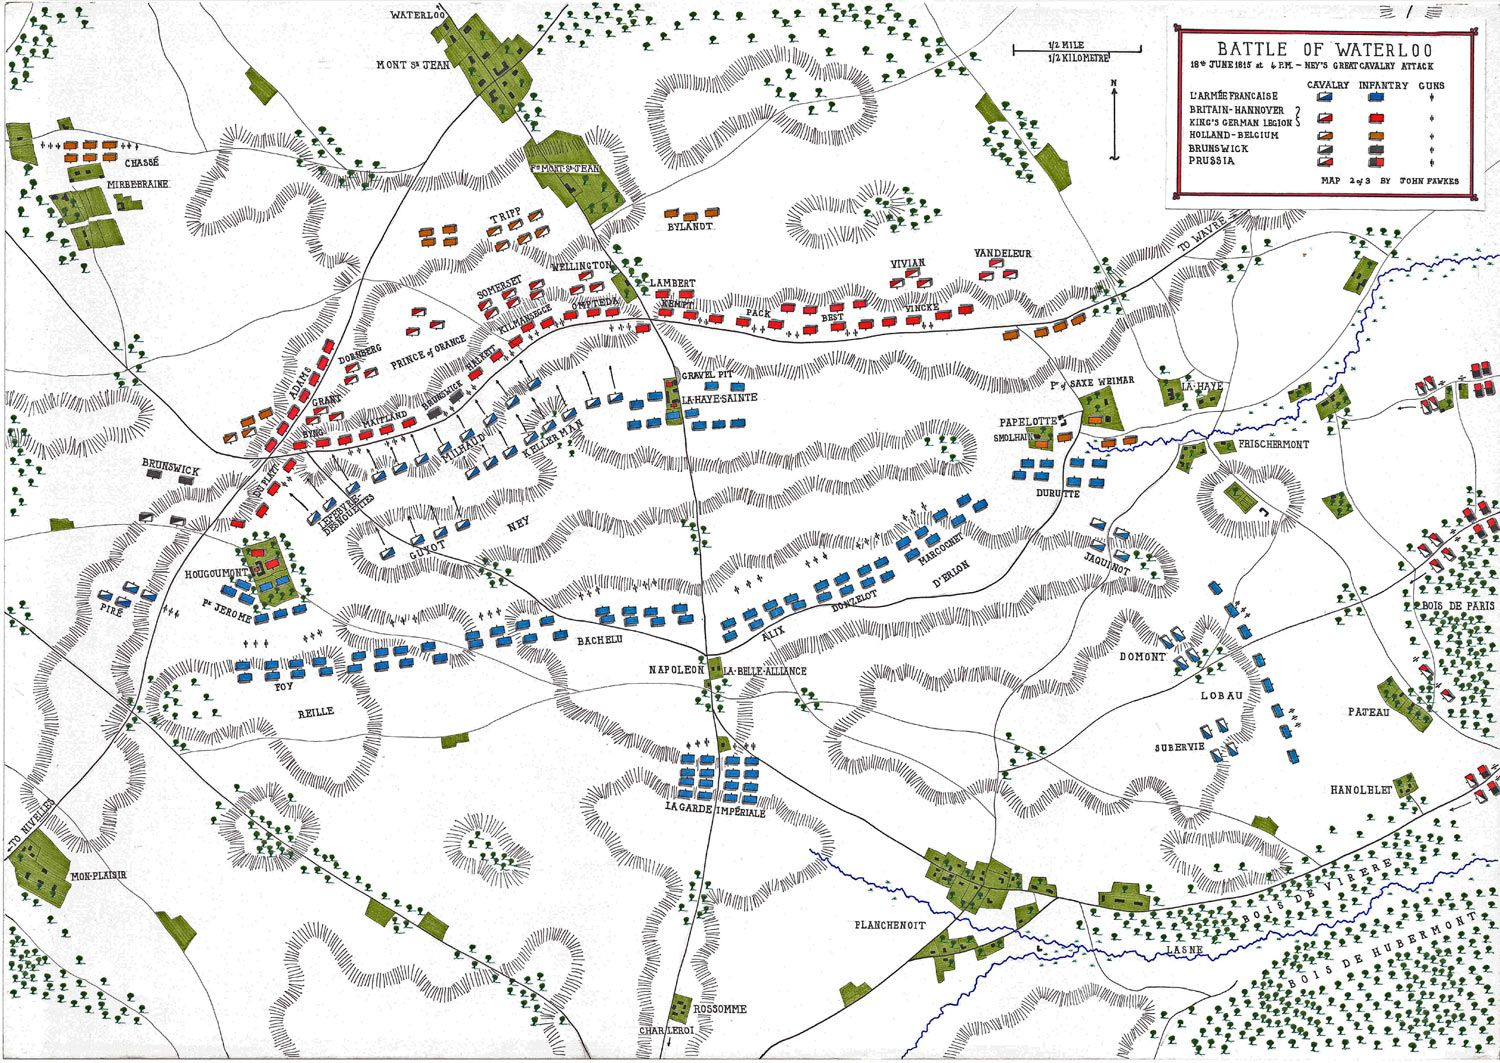 Map of the Battle of Waterloo at 4pm on 18th June 1815 ... Map With Battles Of Napoleon S All on timeline of napoleon's battles, map of grant's battles, map of world war 1 battles, map of civil war battles, map of alexander's battles, map of napoleon bonaparte battles, map of george washington's battles, map of mexican war battles, map of texas battles,